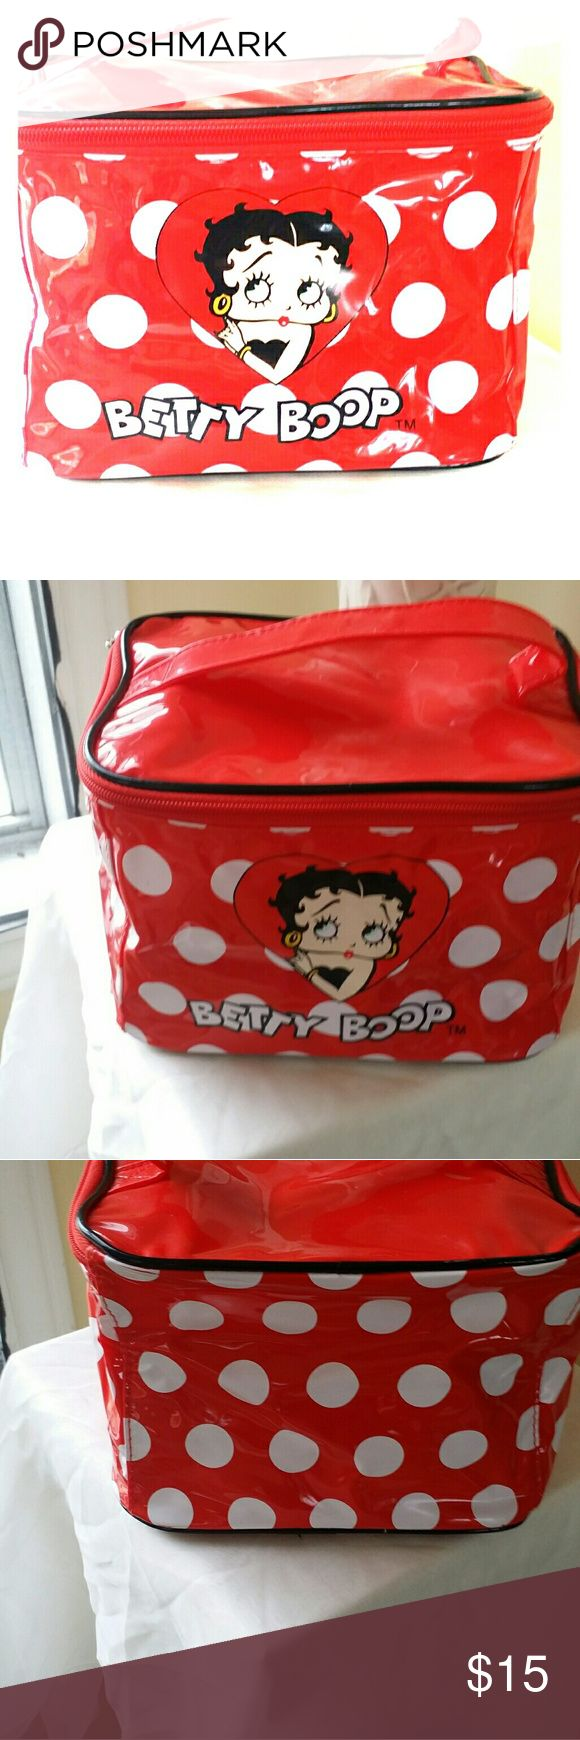 LOOK.BETTY BOOP MAKEUP CASE. COLLECTIBLE. Old favorite